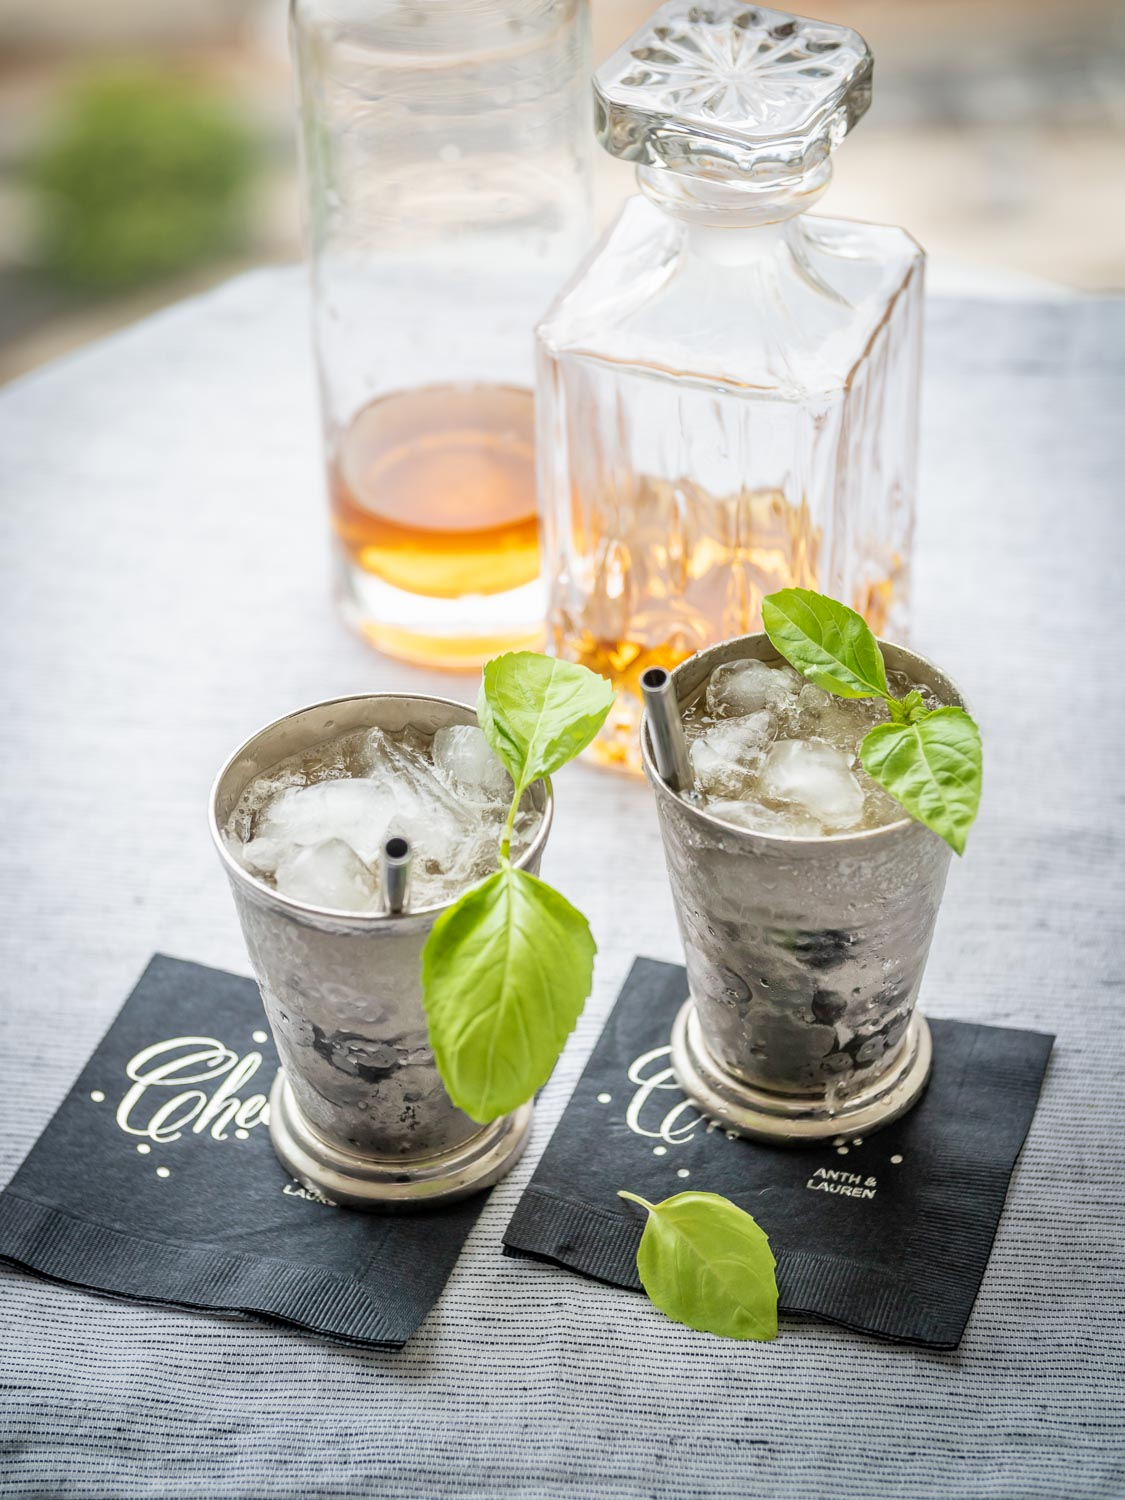 Yes, I realize those are basil leaves for a Basil Julep. But I loved this picture and needed something for this post.